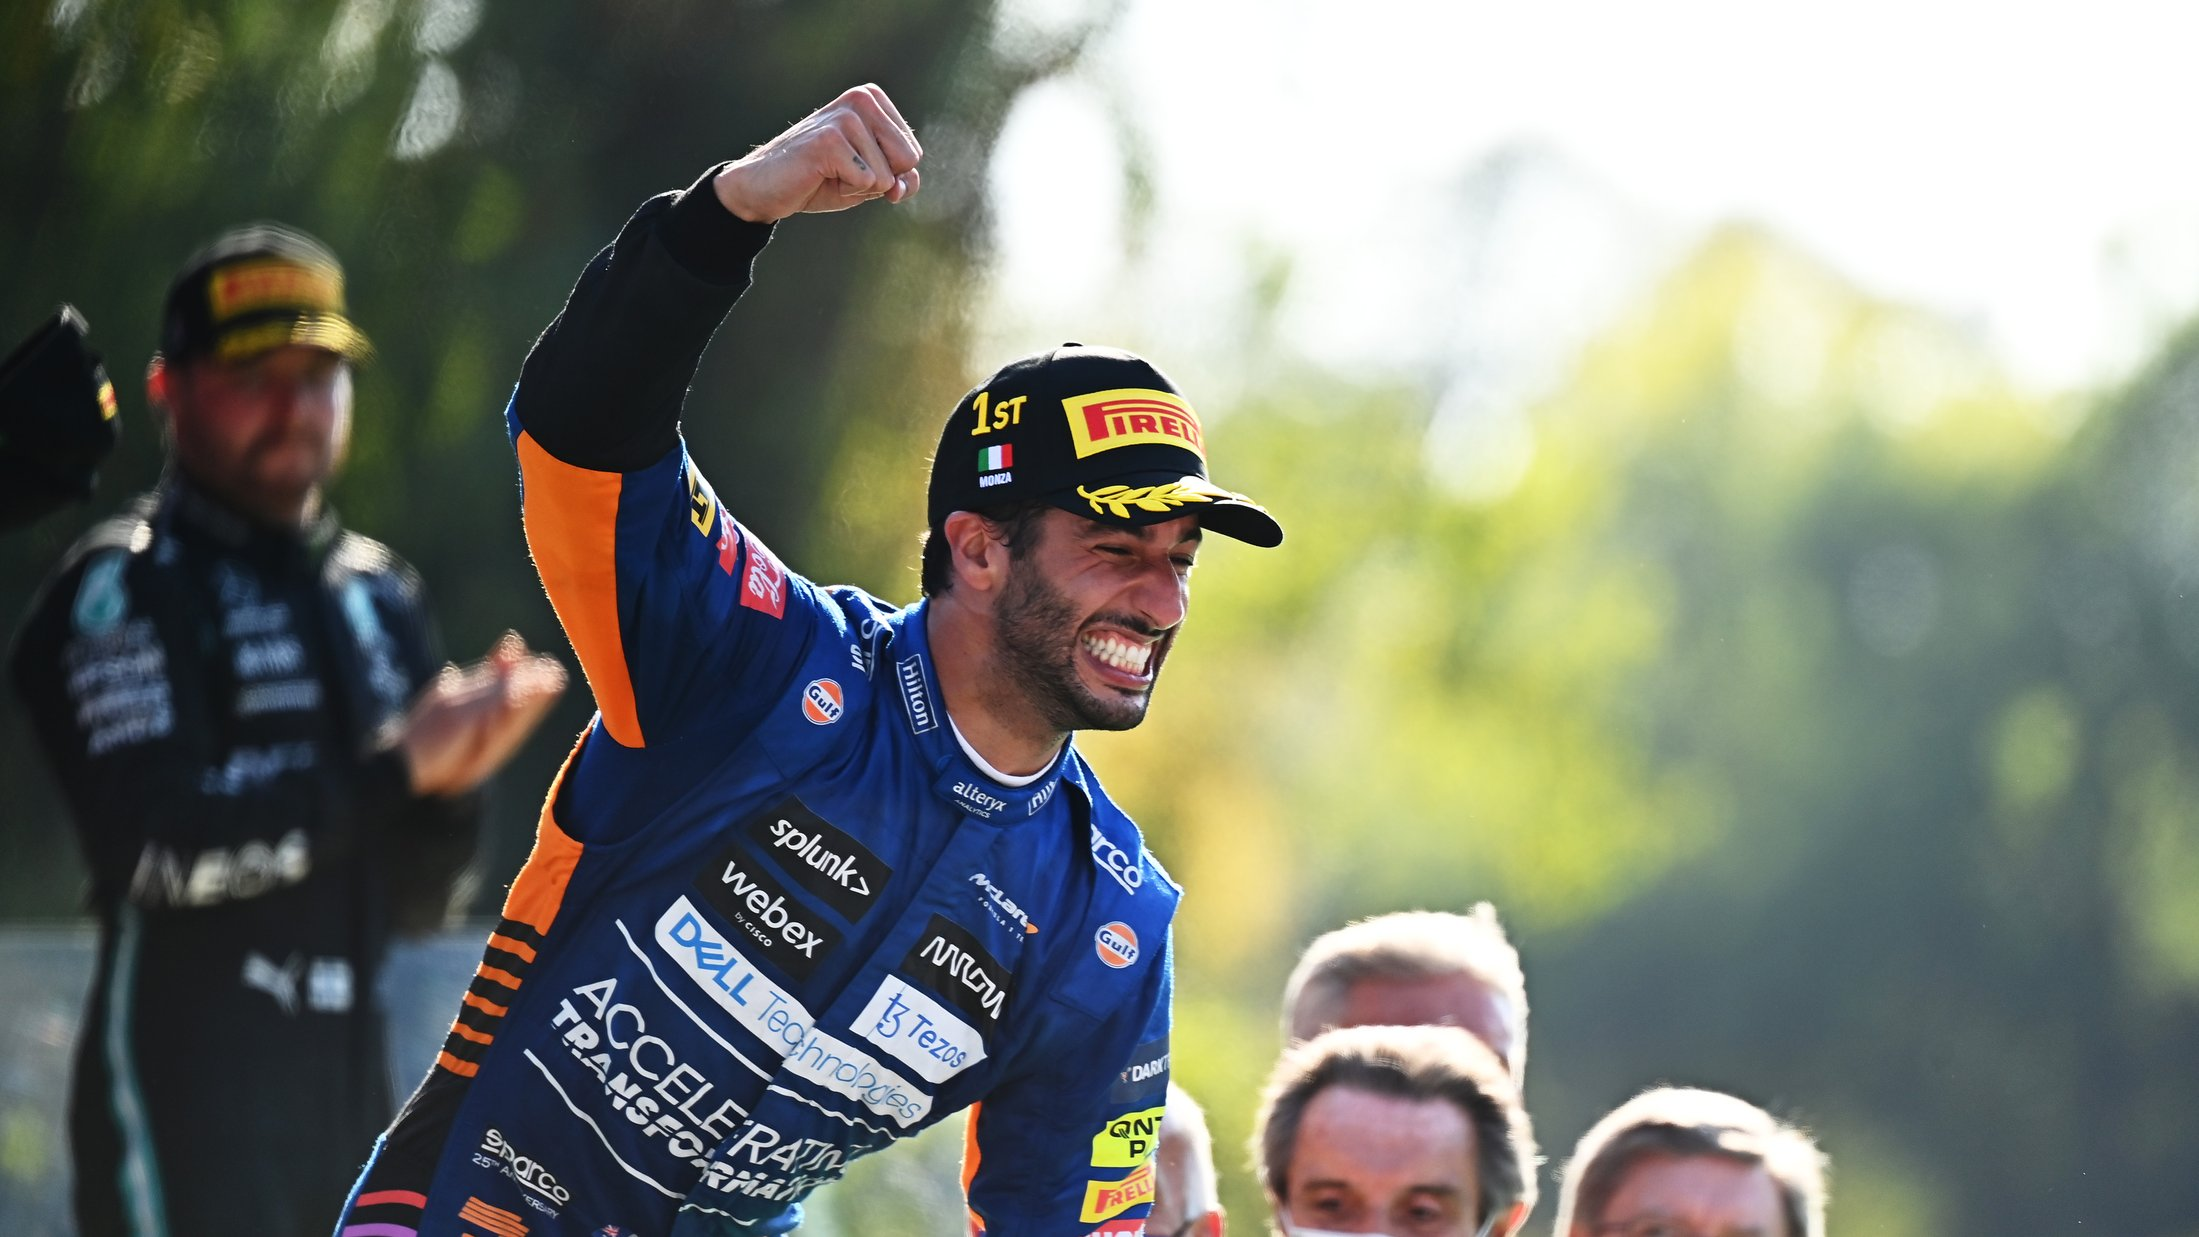 'Deep down I never lost faith or belief' says Daniel Ricciardo after taking first win since 2018   Formula 1®